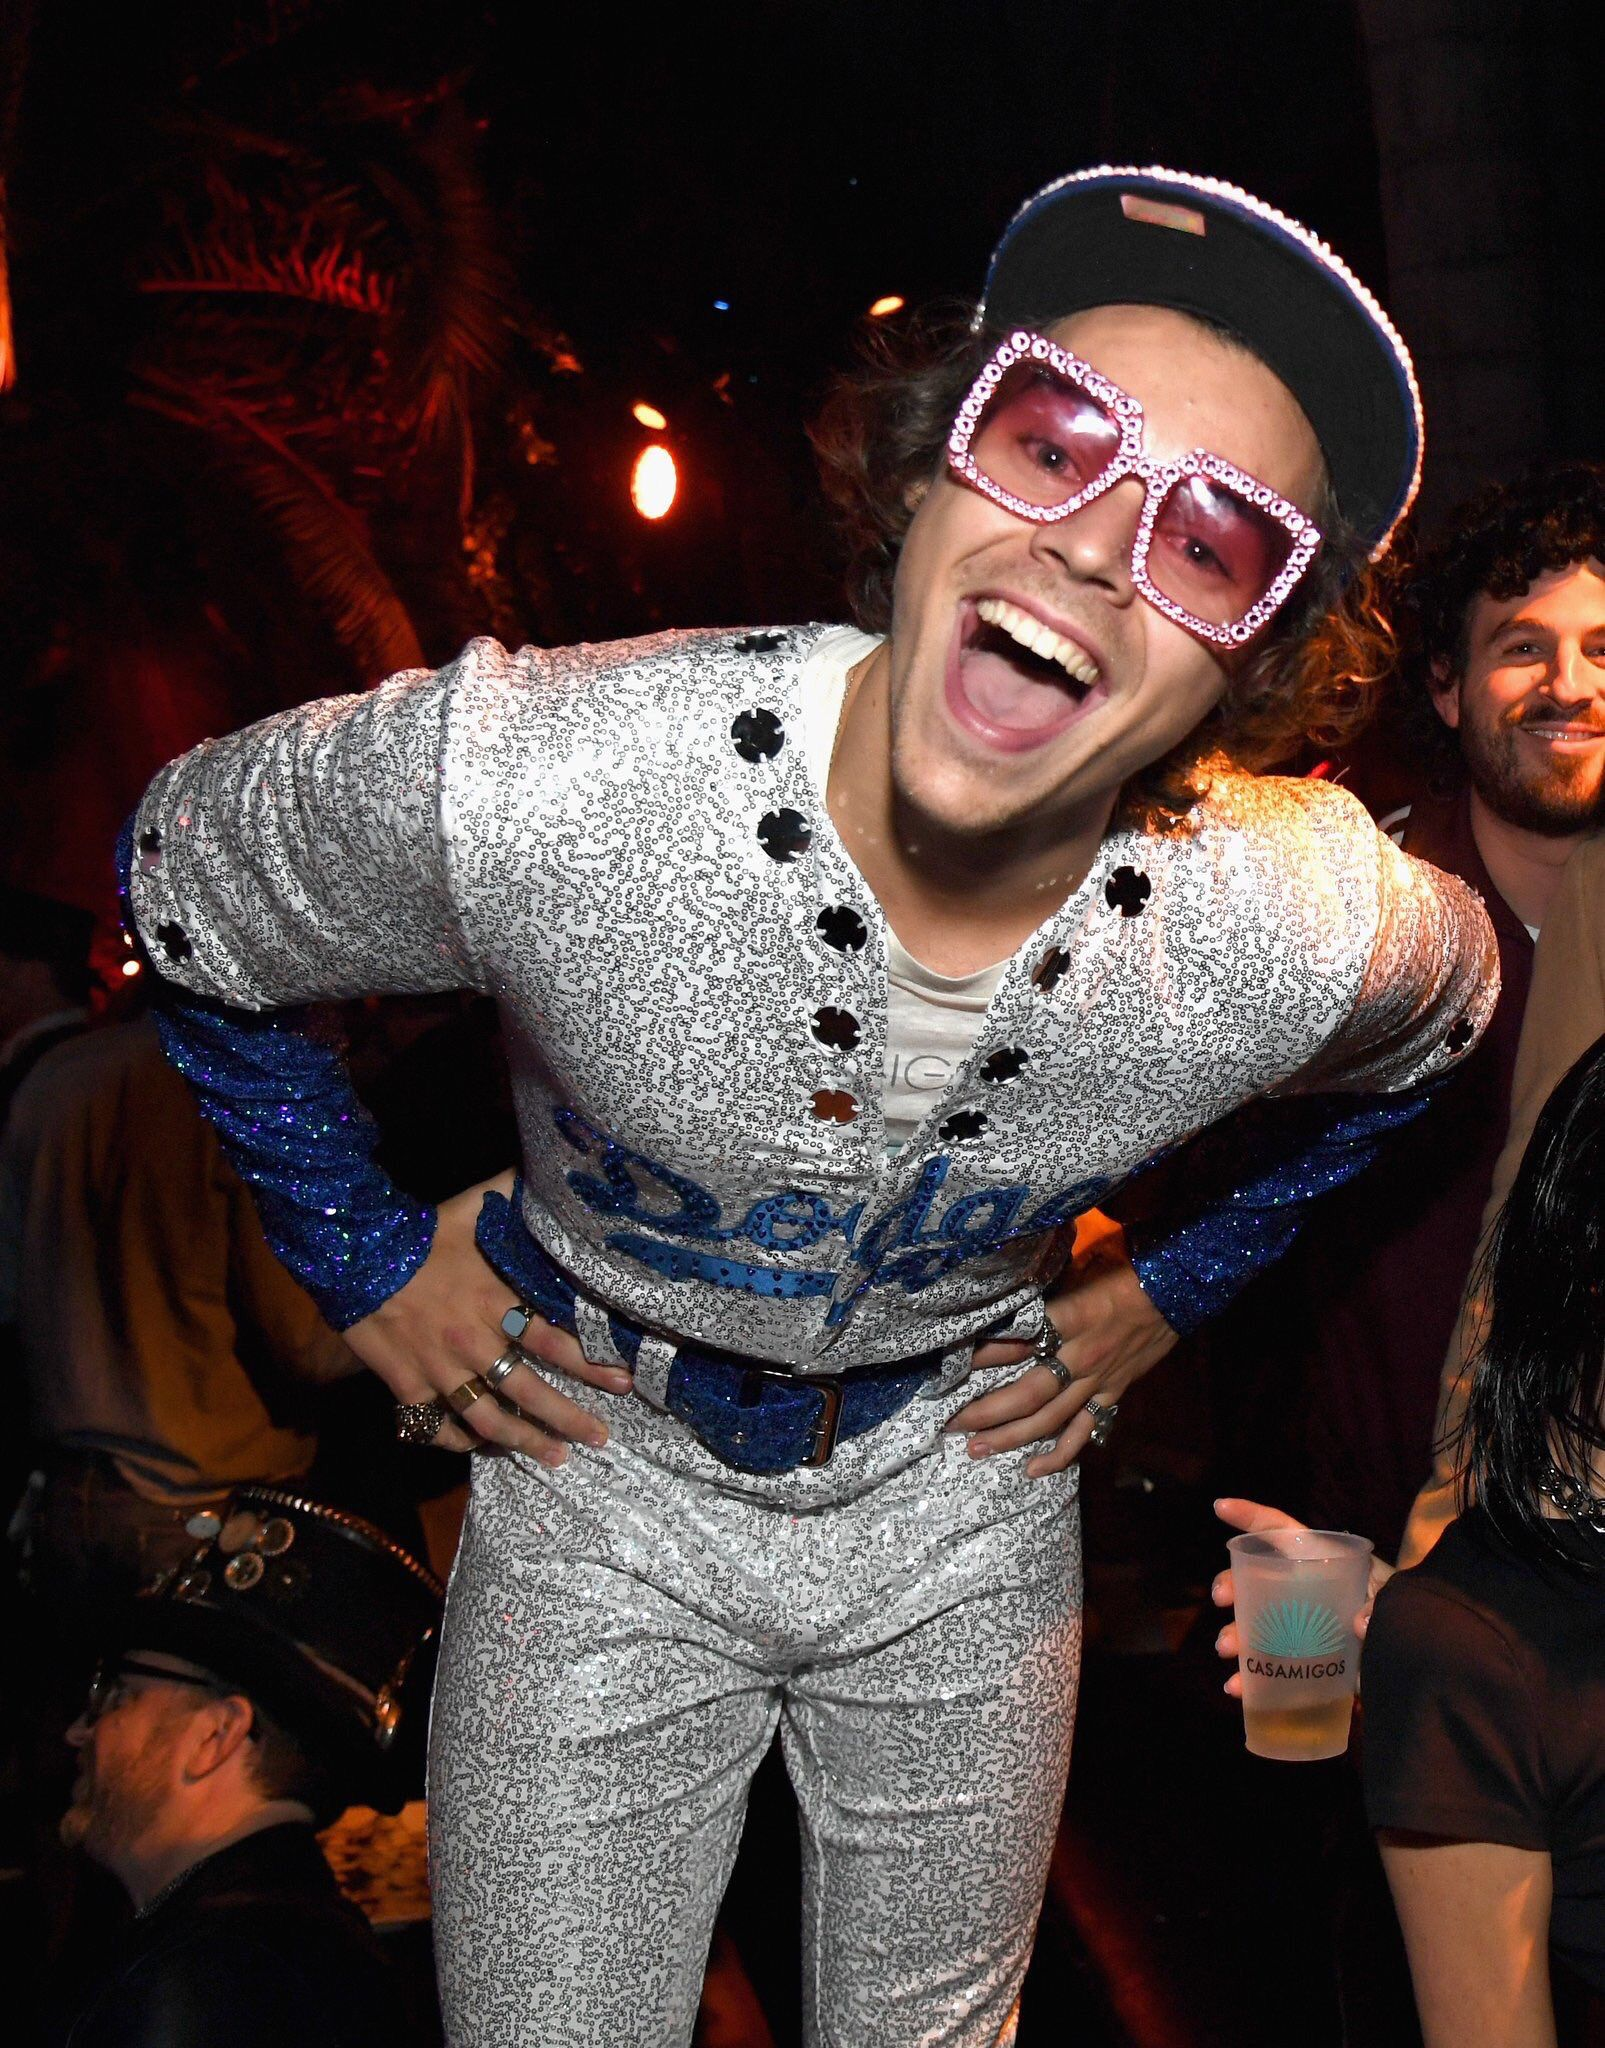 Harry Styles At A Halloween Party 10 26 18 Style Best Celebrity Halloween Costumes Harry Styles Hot